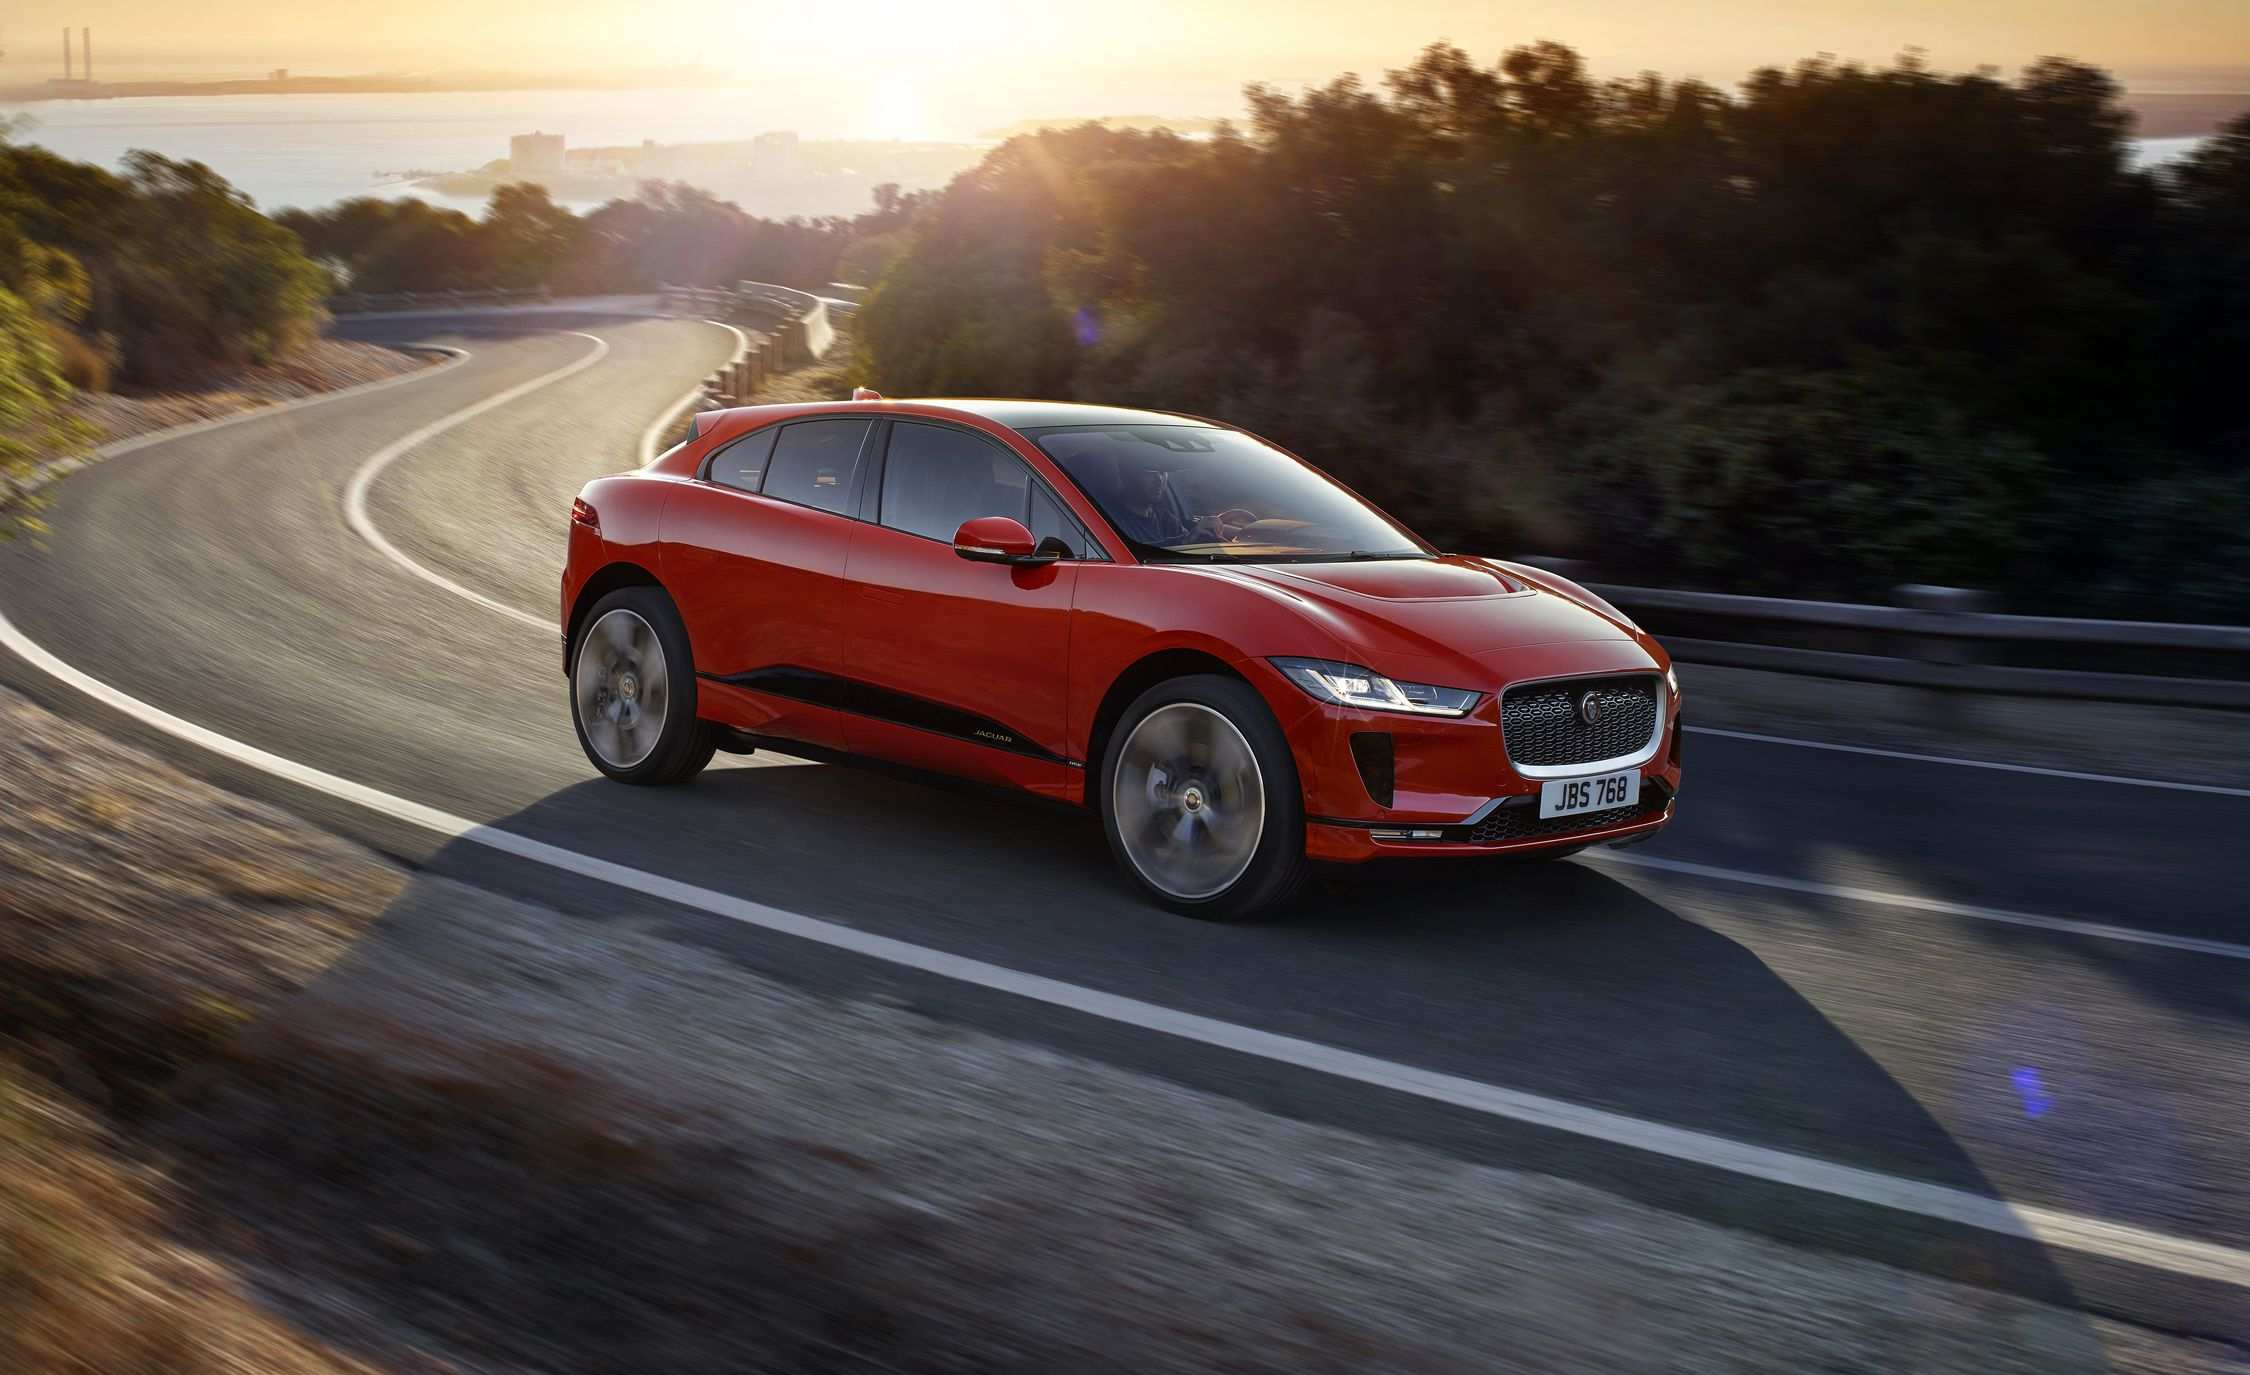 94 Great New 2019 Jaguar I Pace Wiki Review Specs And Release Date Ratings by New 2019 Jaguar I Pace Wiki Review Specs And Release Date